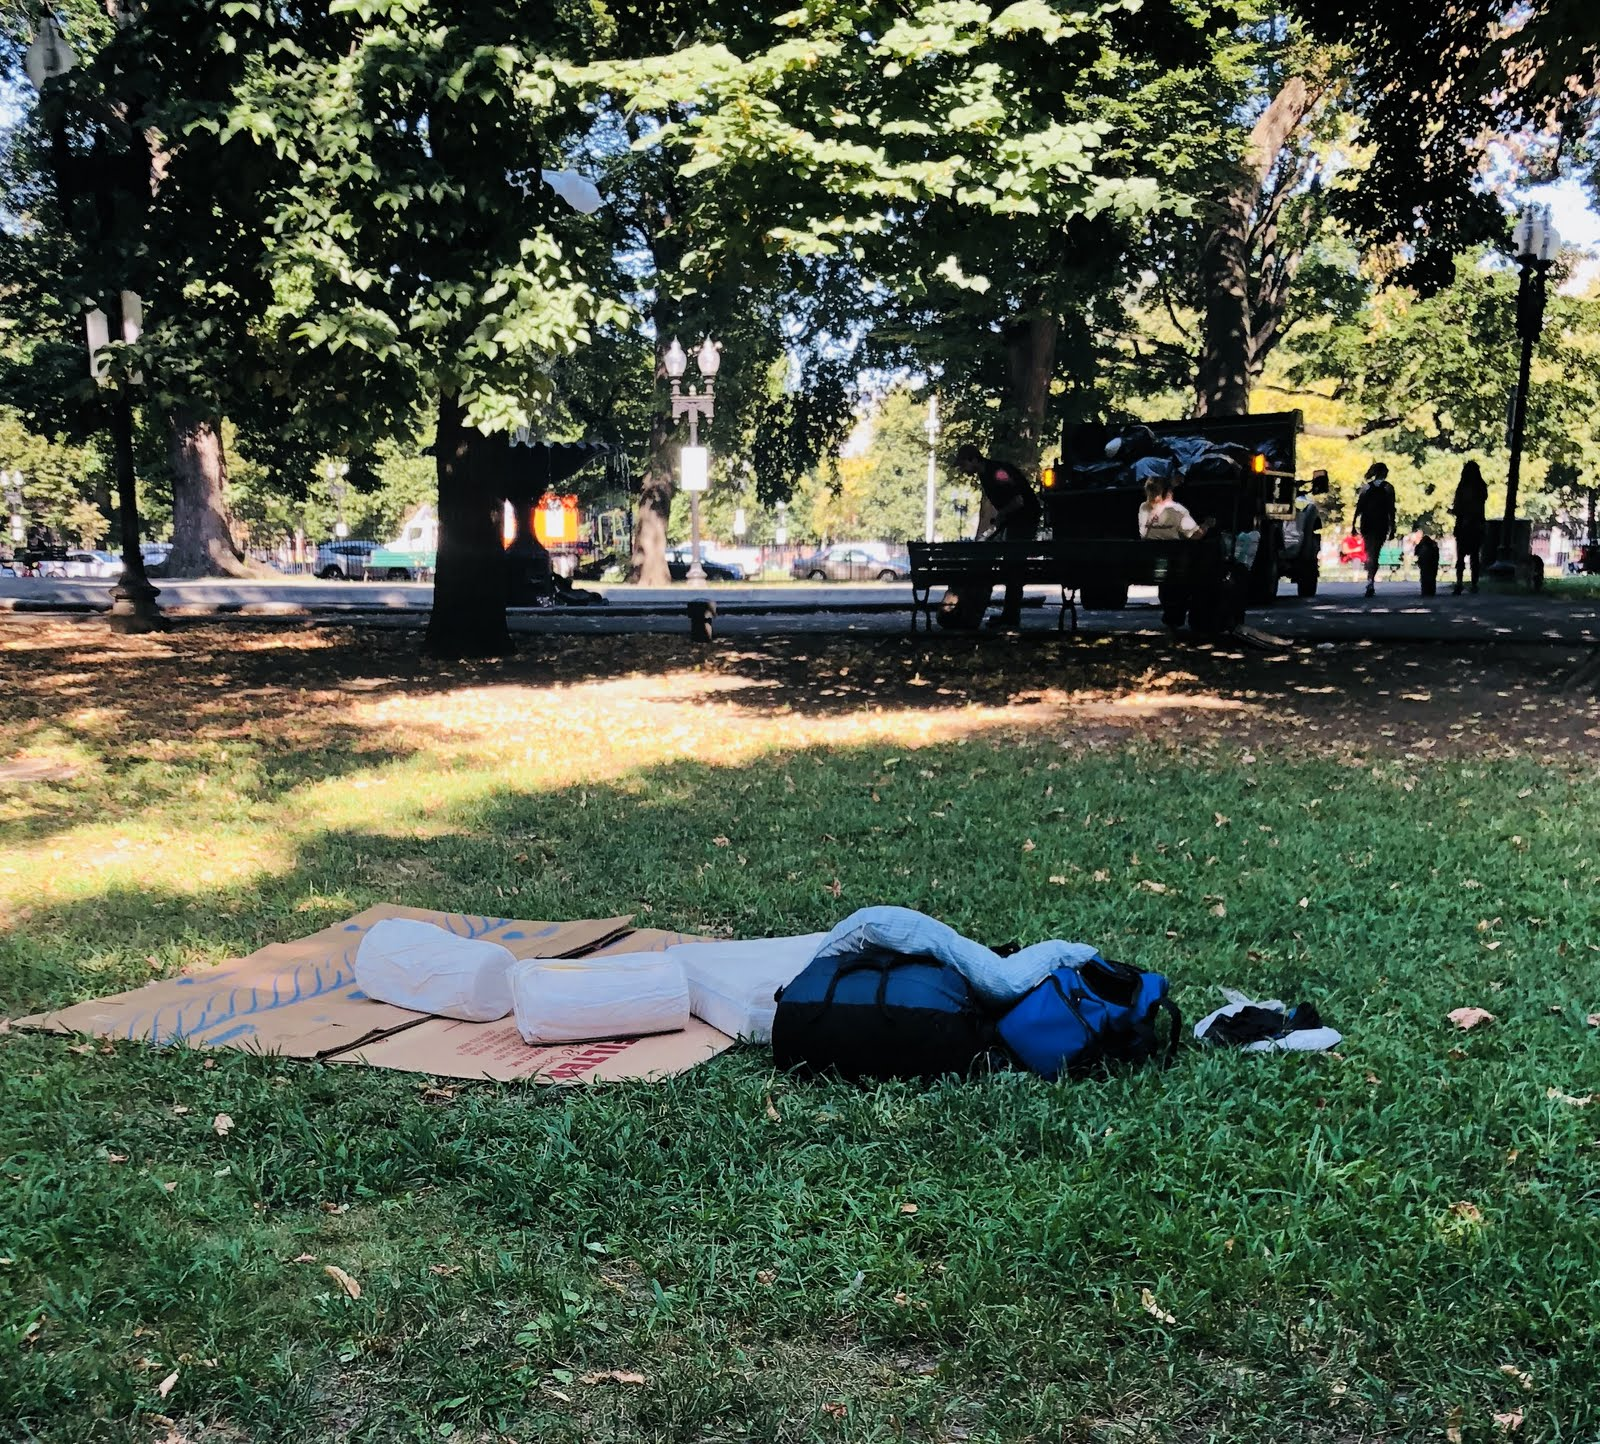 A bed in the middle of the park.  ( source: Sarah McManus )